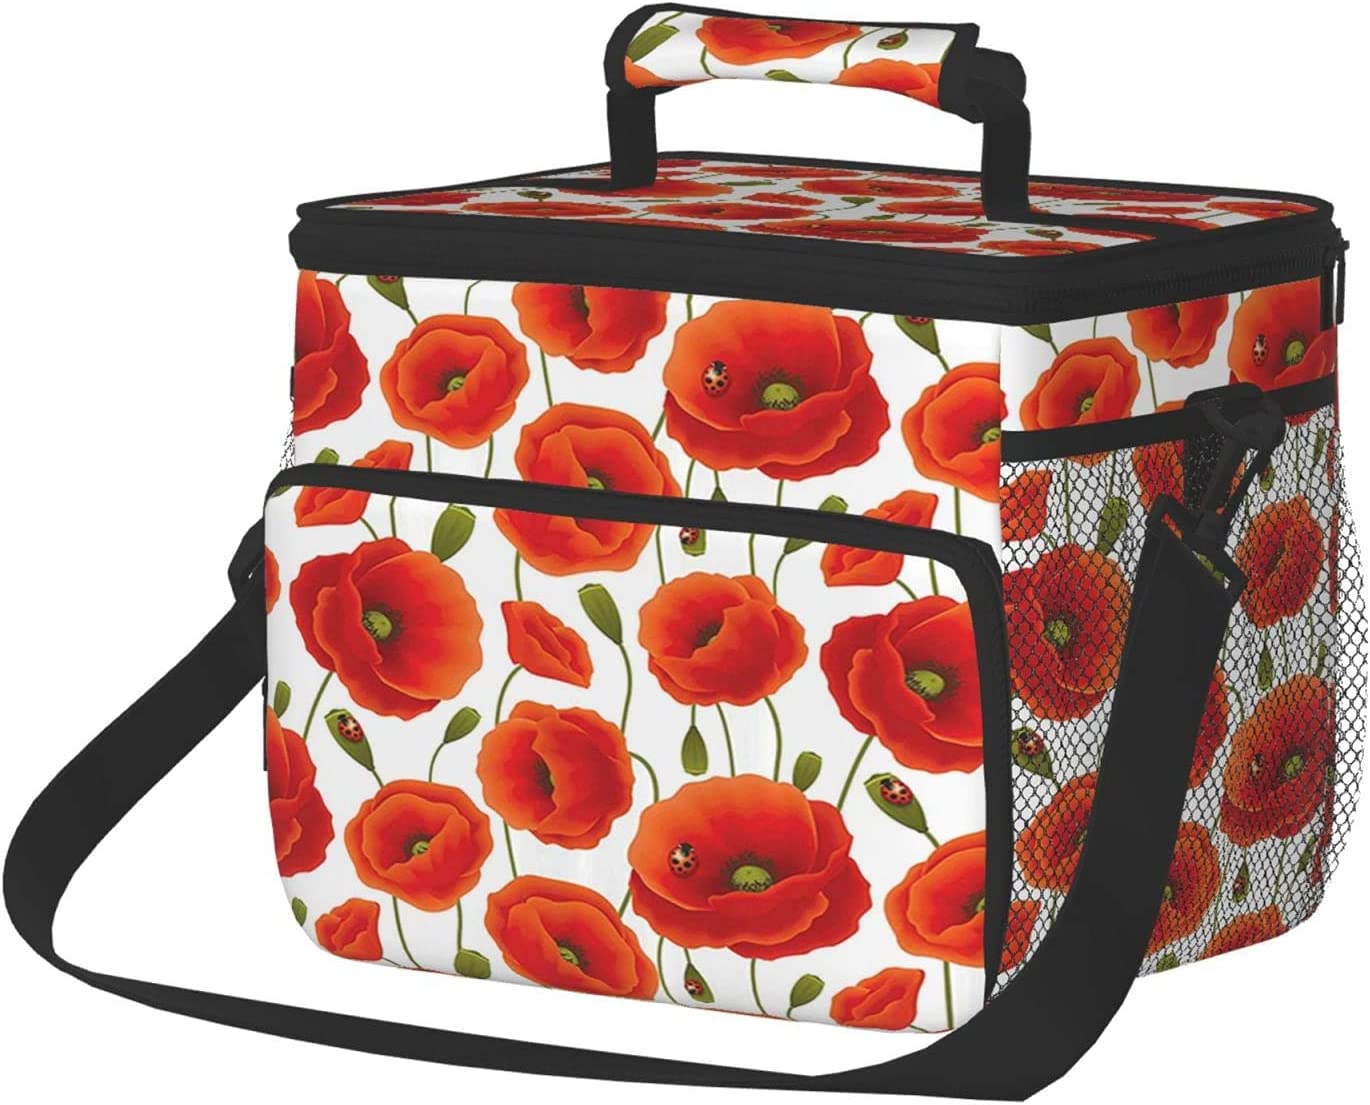 Large Insulated 35% OFF Lunch Box For Men Jacksonville Mall Of Women Floral Poppy Pattern